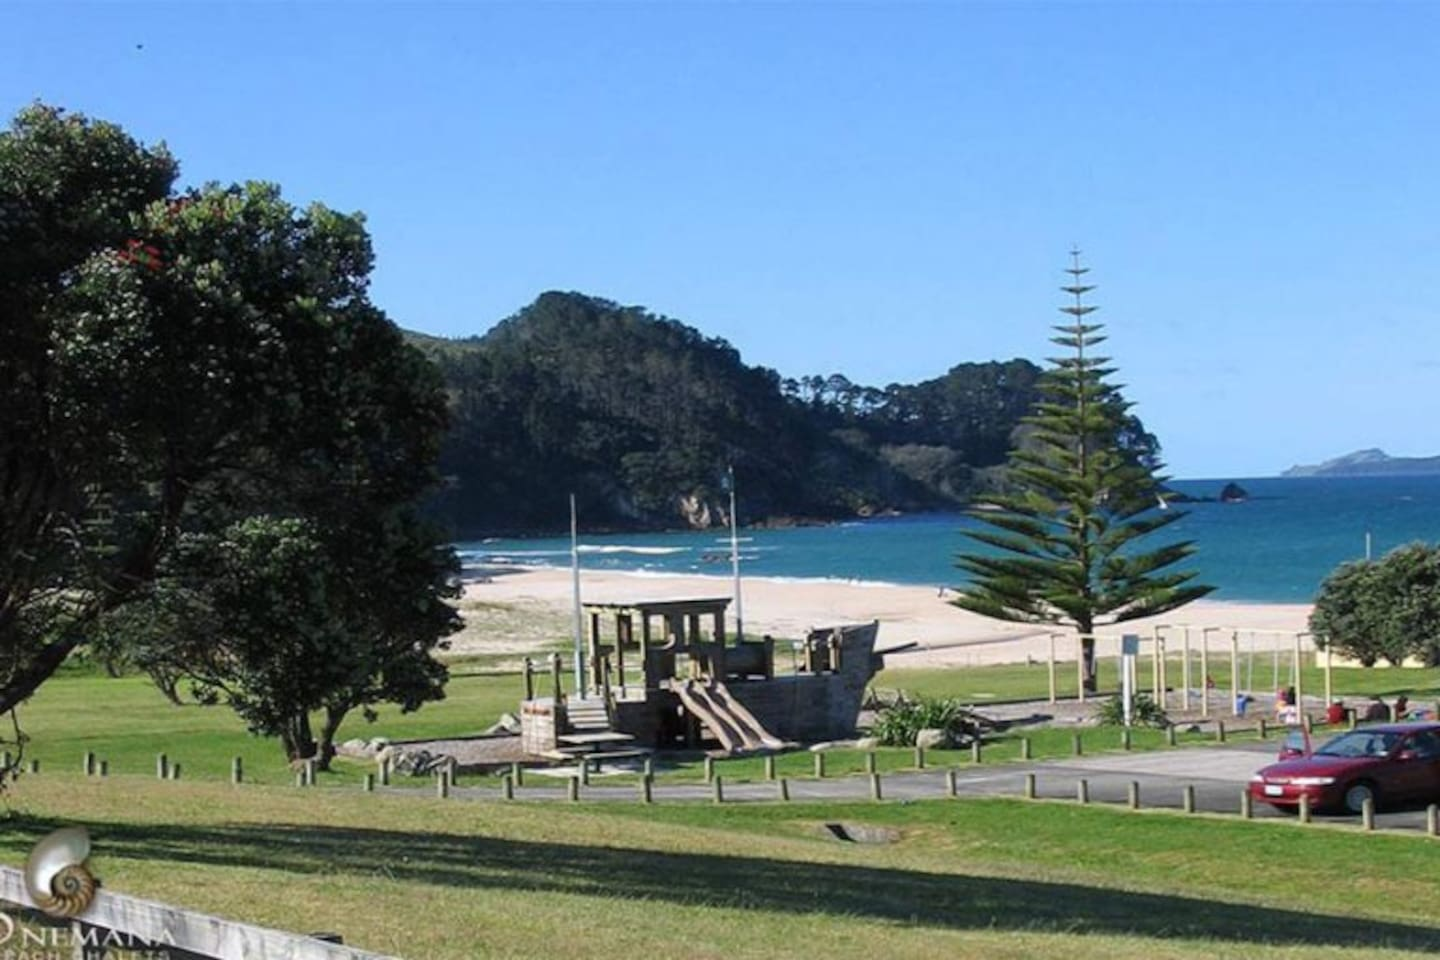 Beautiful secluded Onemana beach with kids play area and beachfront tennis court for anyone's use.